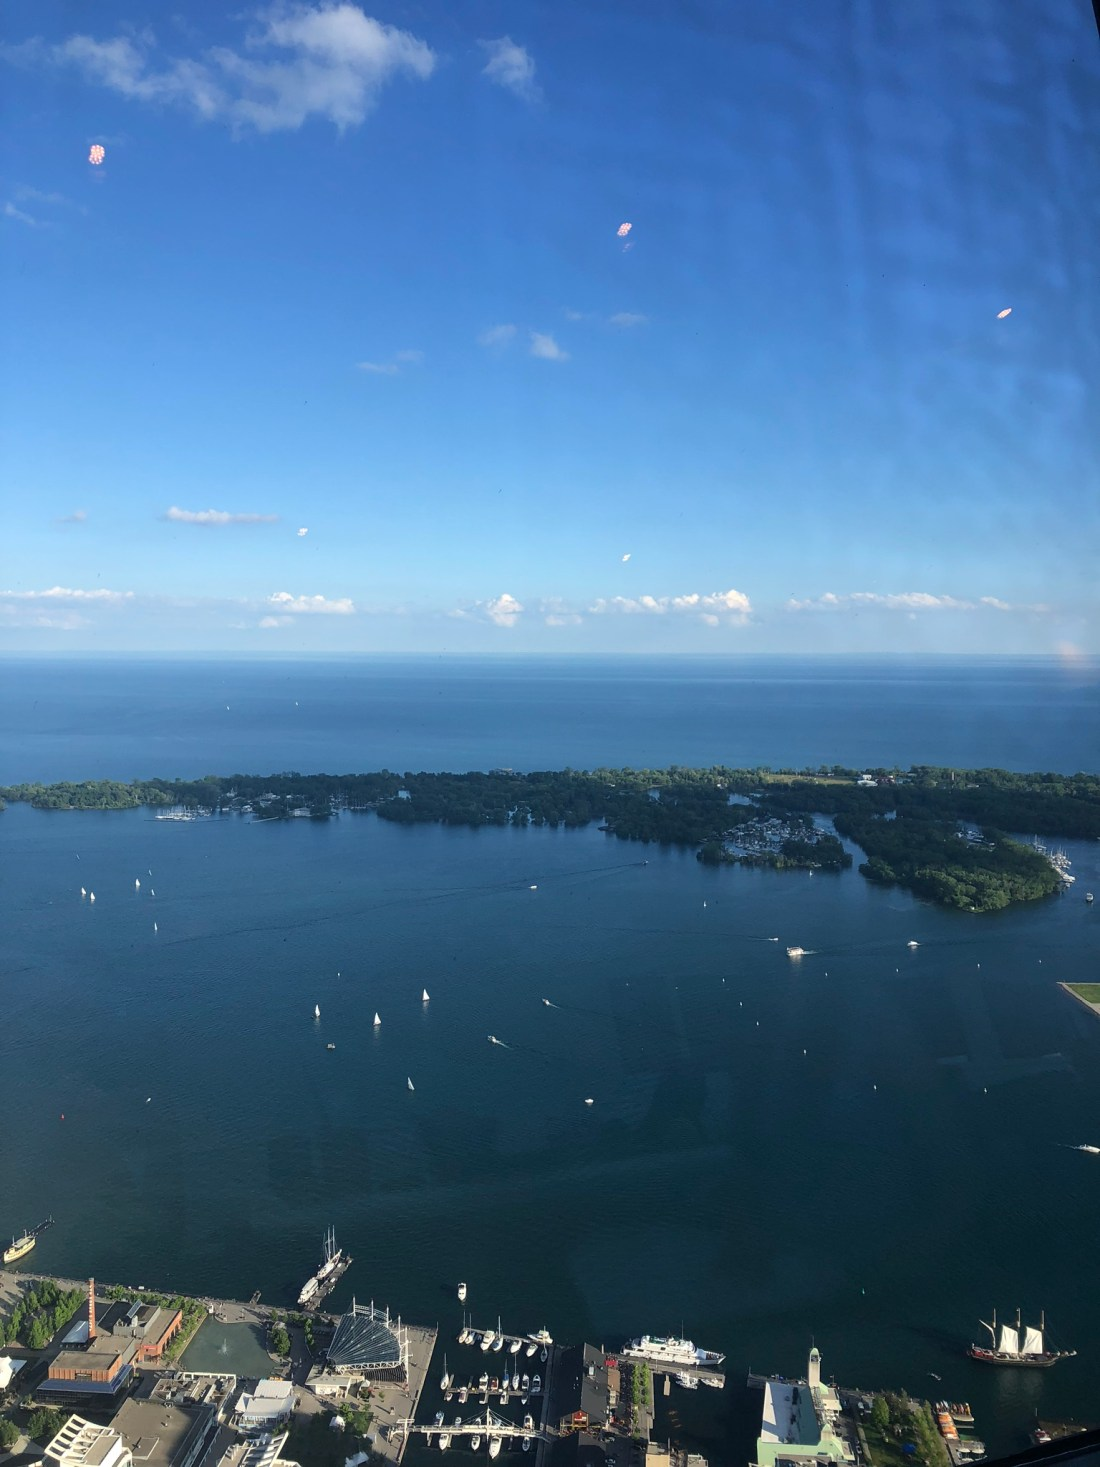 Summer in Toronto: views from the CN Tower over Lake Ontario